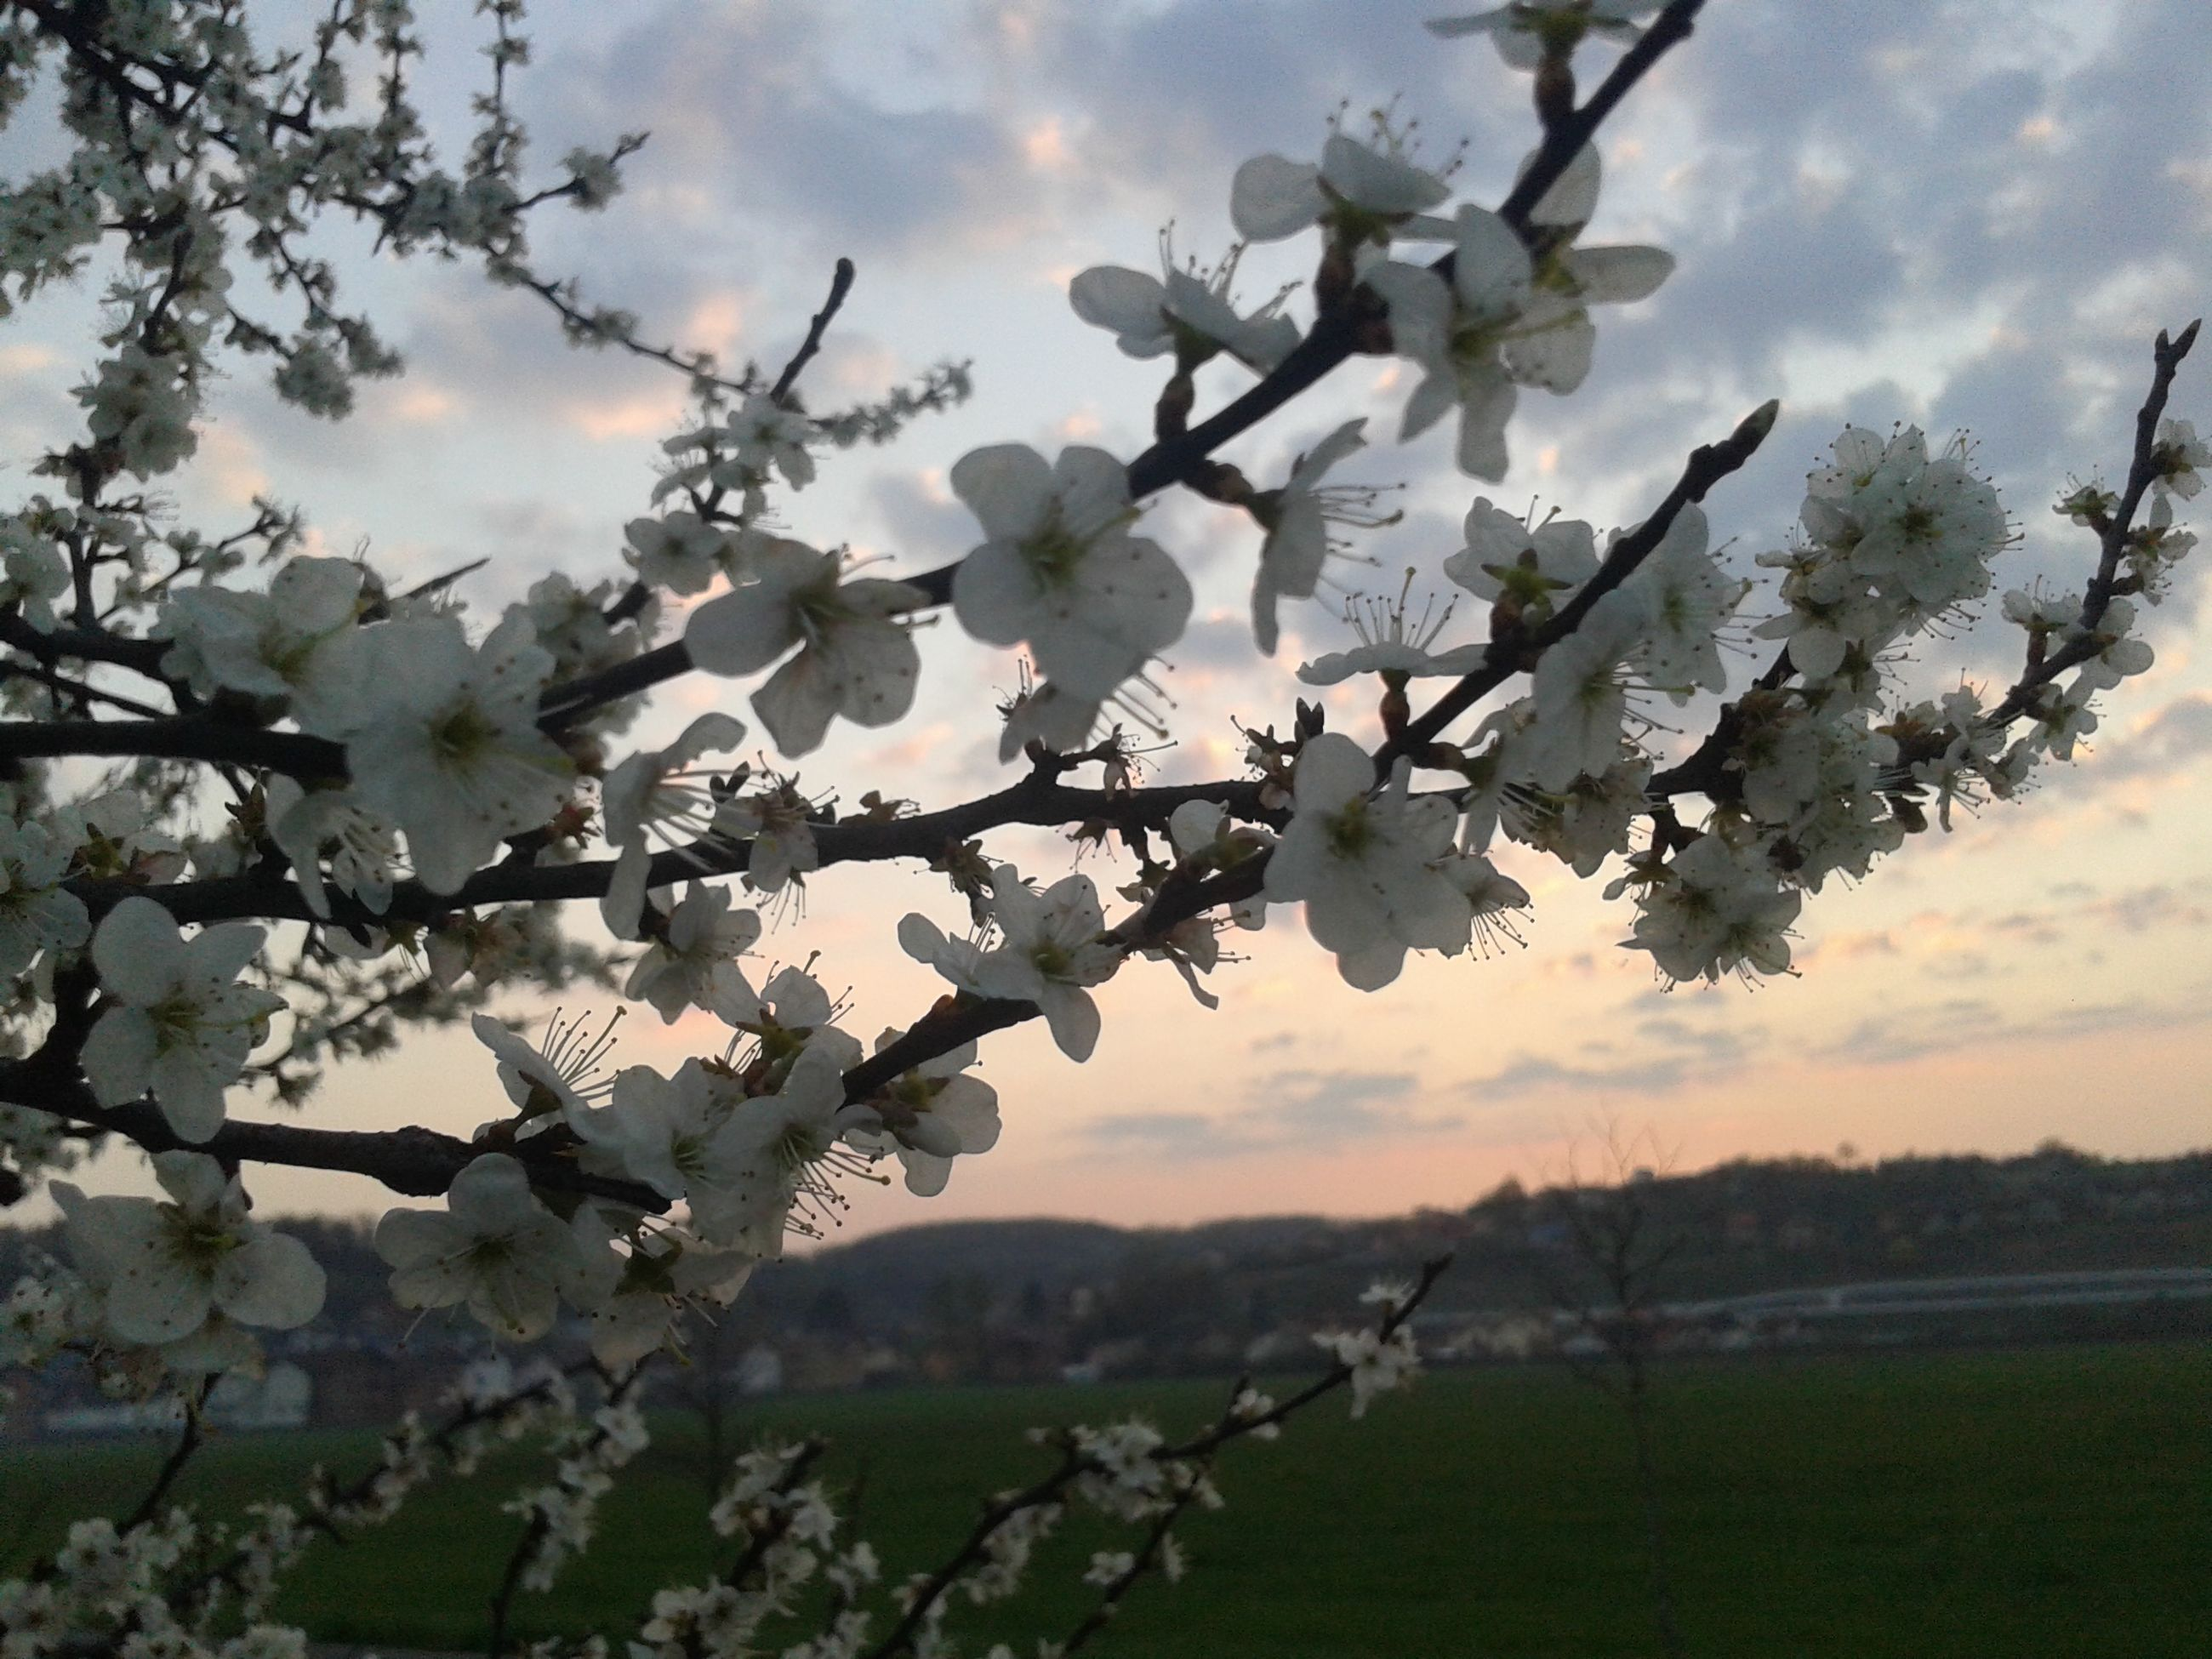 flower, freshness, sky, growth, tree, beauty in nature, branch, nature, fragility, blossom, springtime, cloud - sky, cherry blossom, in bloom, tranquil scene, tranquility, blooming, field, cherry tree, cloud